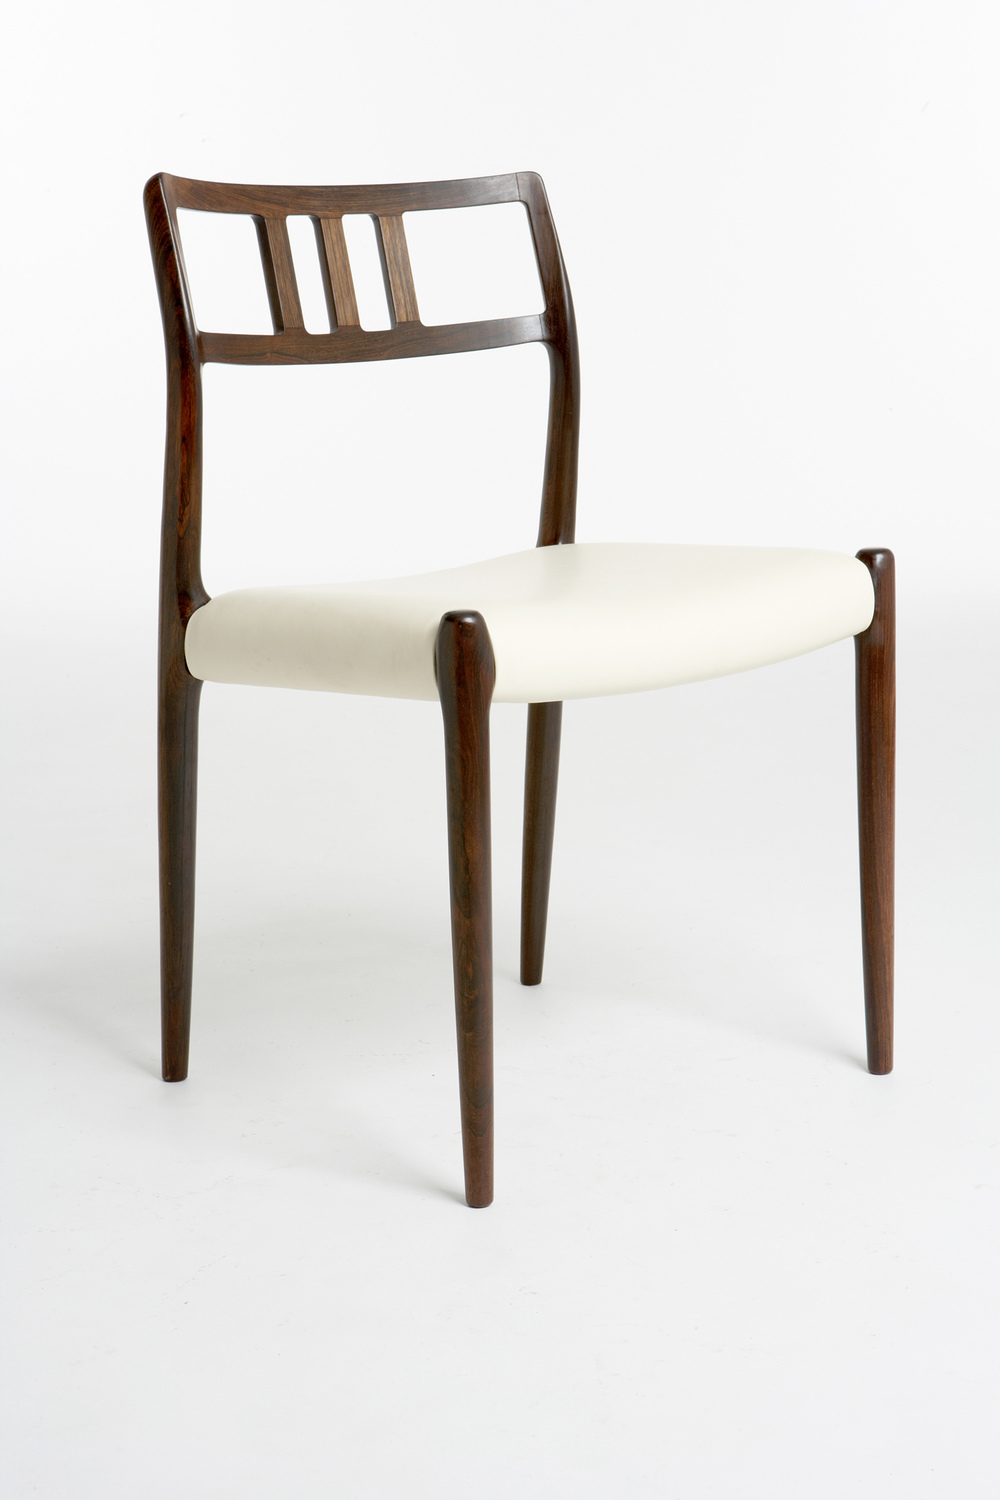 N O Moller 1966 Dining Chair • made 1966-69 •